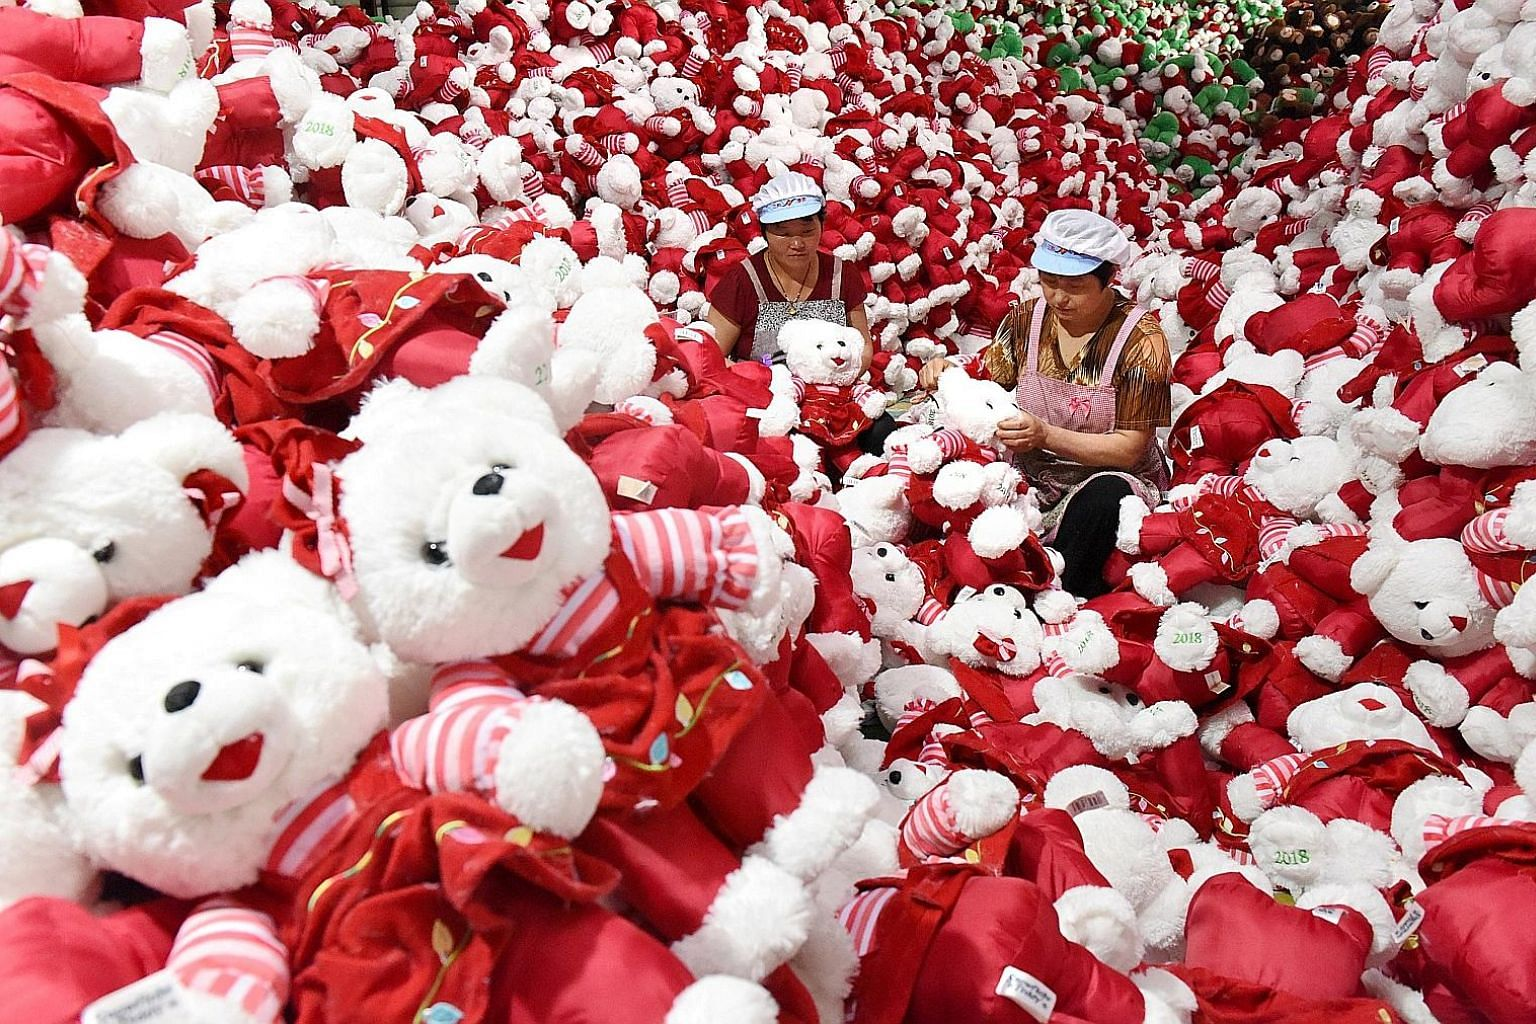 Chinese workers making stuffed toys for export. Asean countries, particularly Vietnam, Cambodia and Malaysia, will be among the biggest winners in the global supply chains in the event of a prolonged US-China trade war.